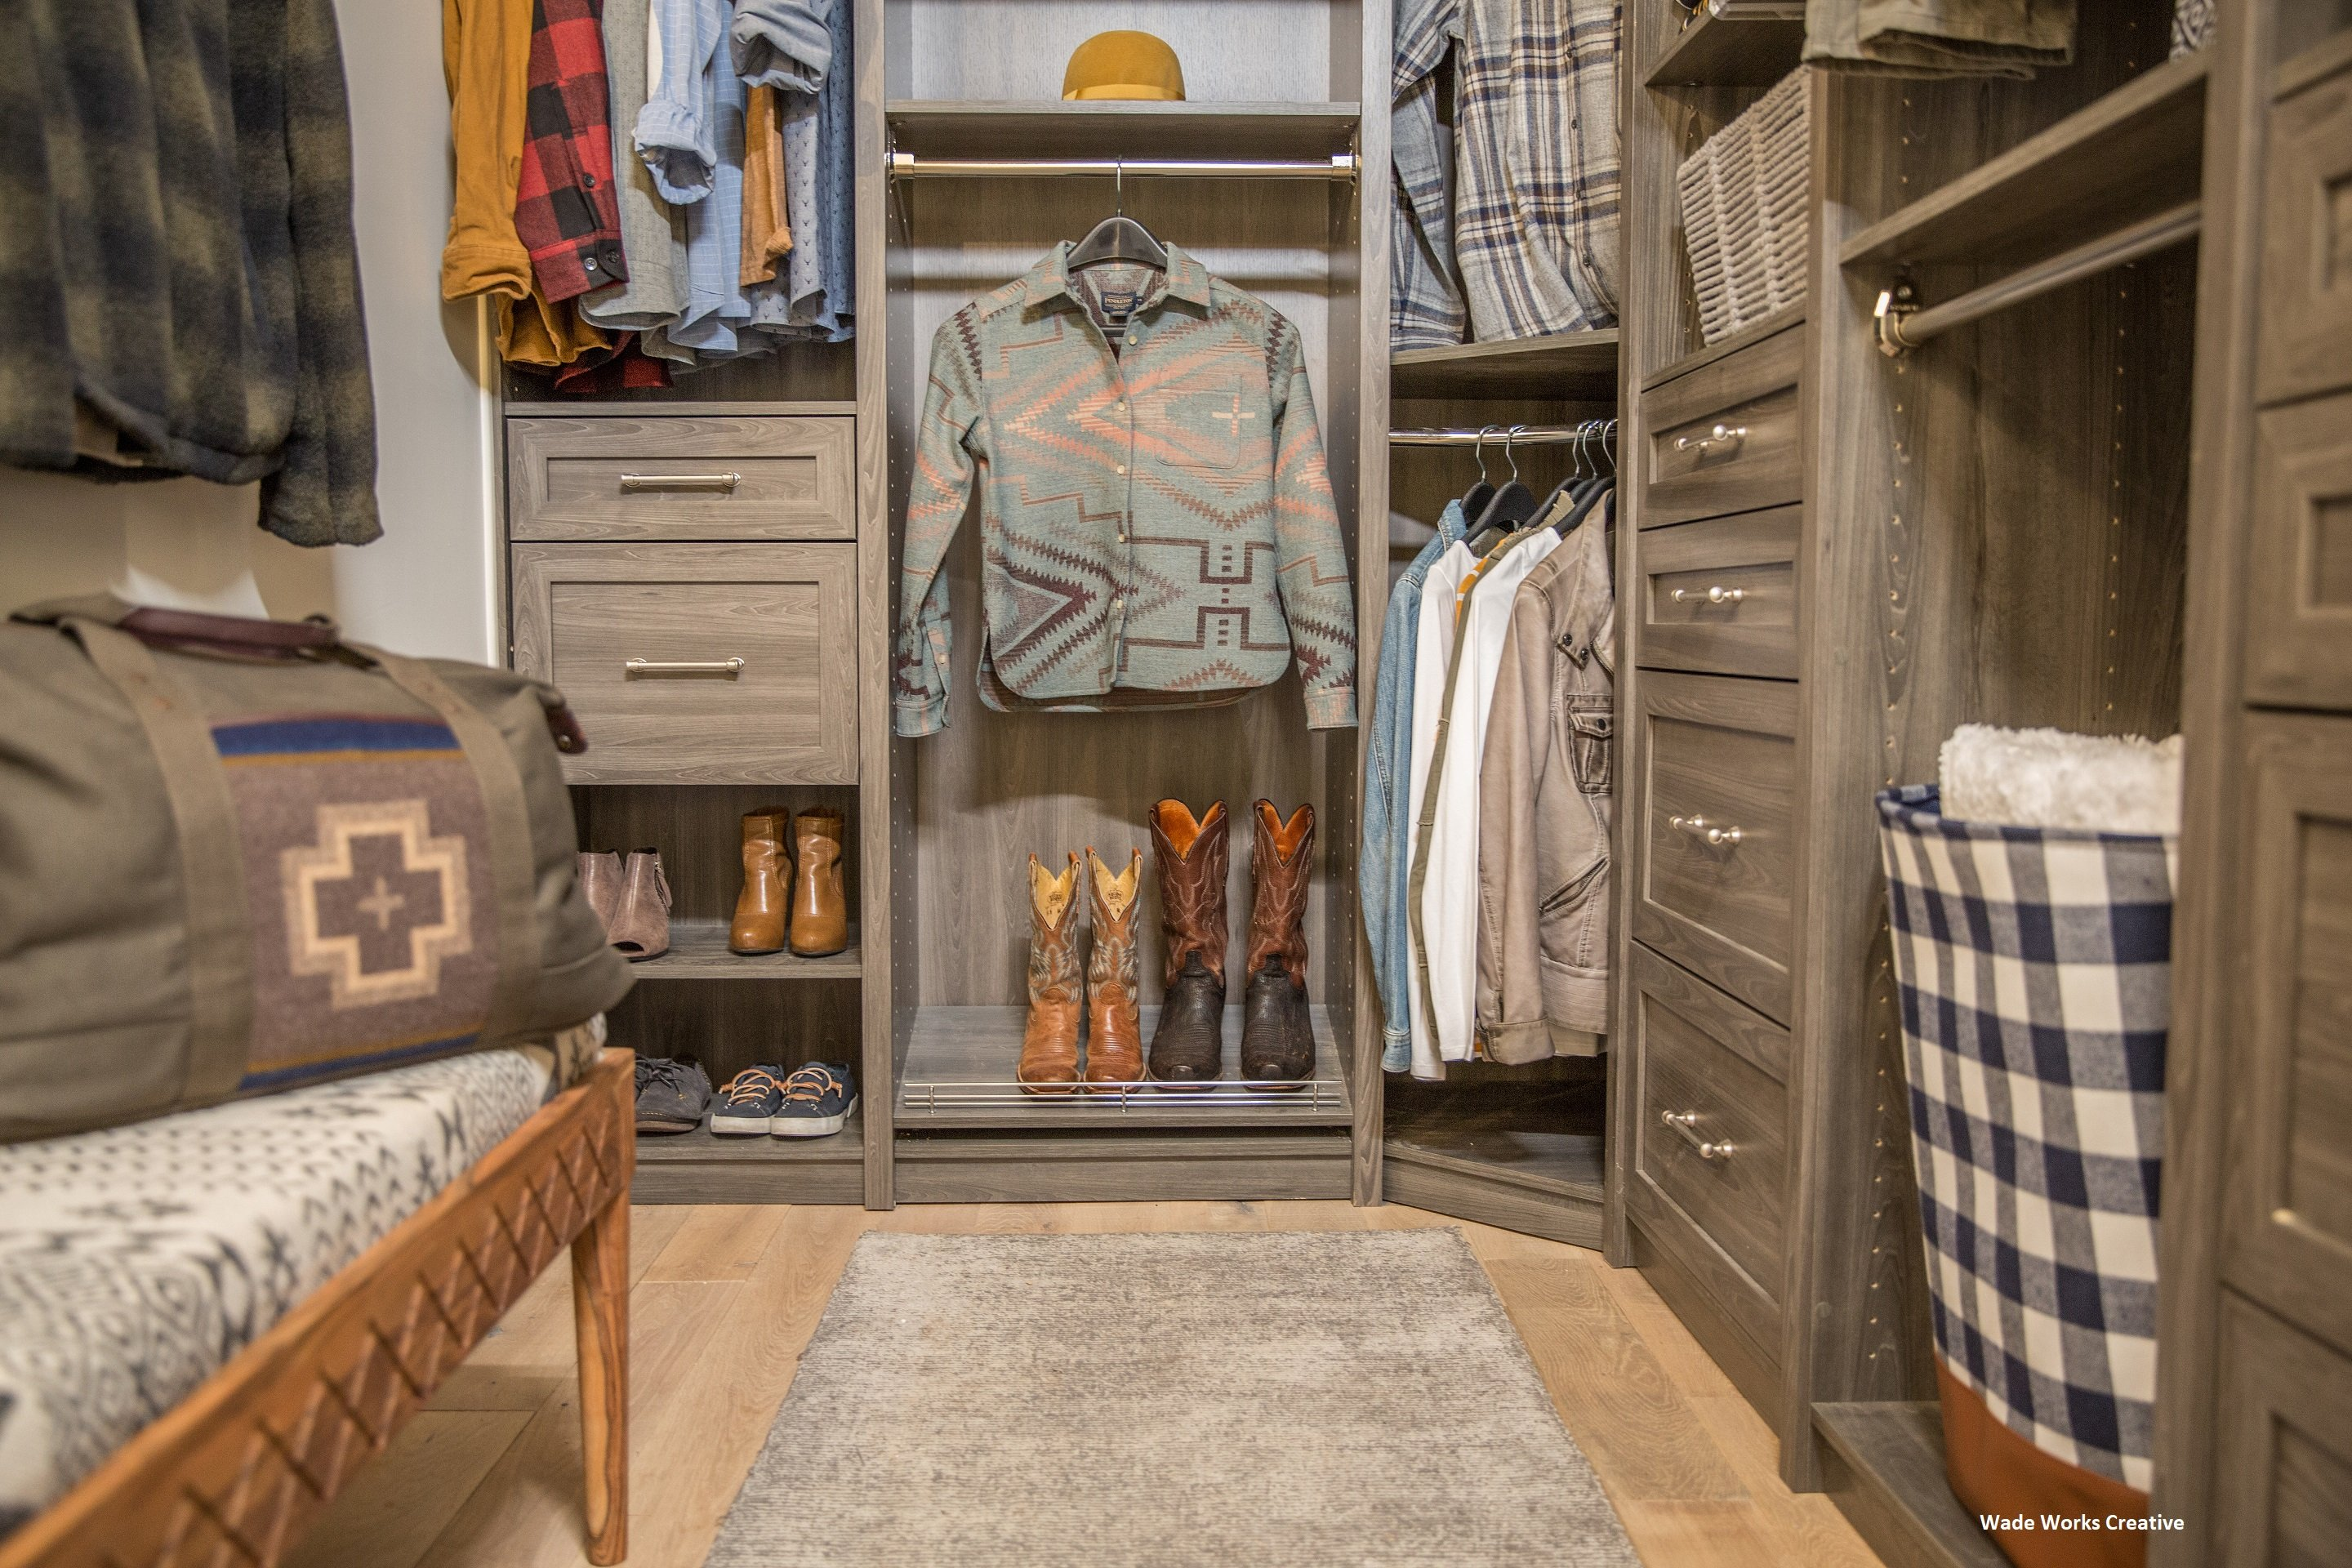 TV Host and Designer Chip Wade's Vacation Home Closet